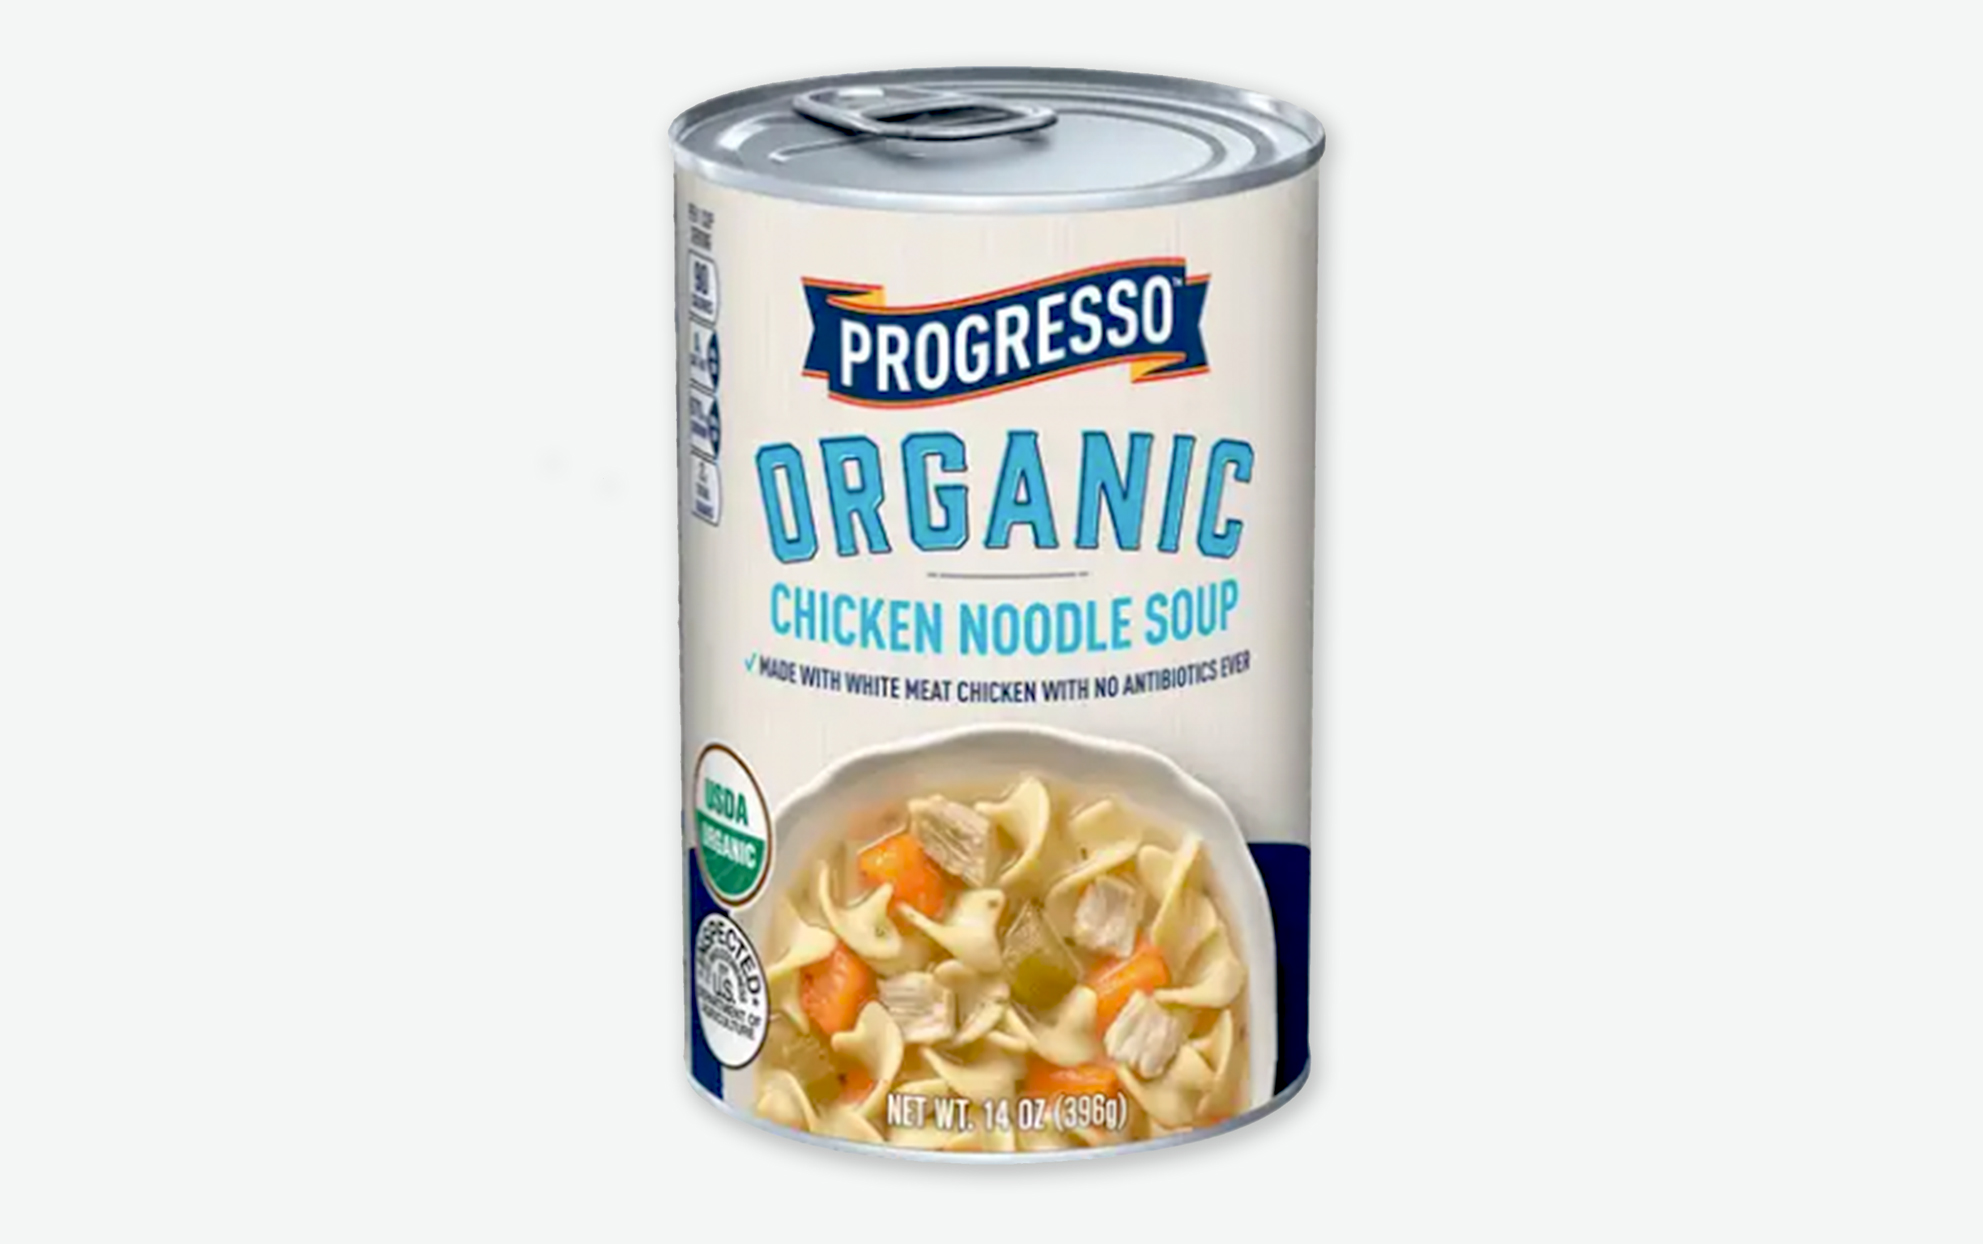 A can of Progresso Organic Chicken Noodle Soup